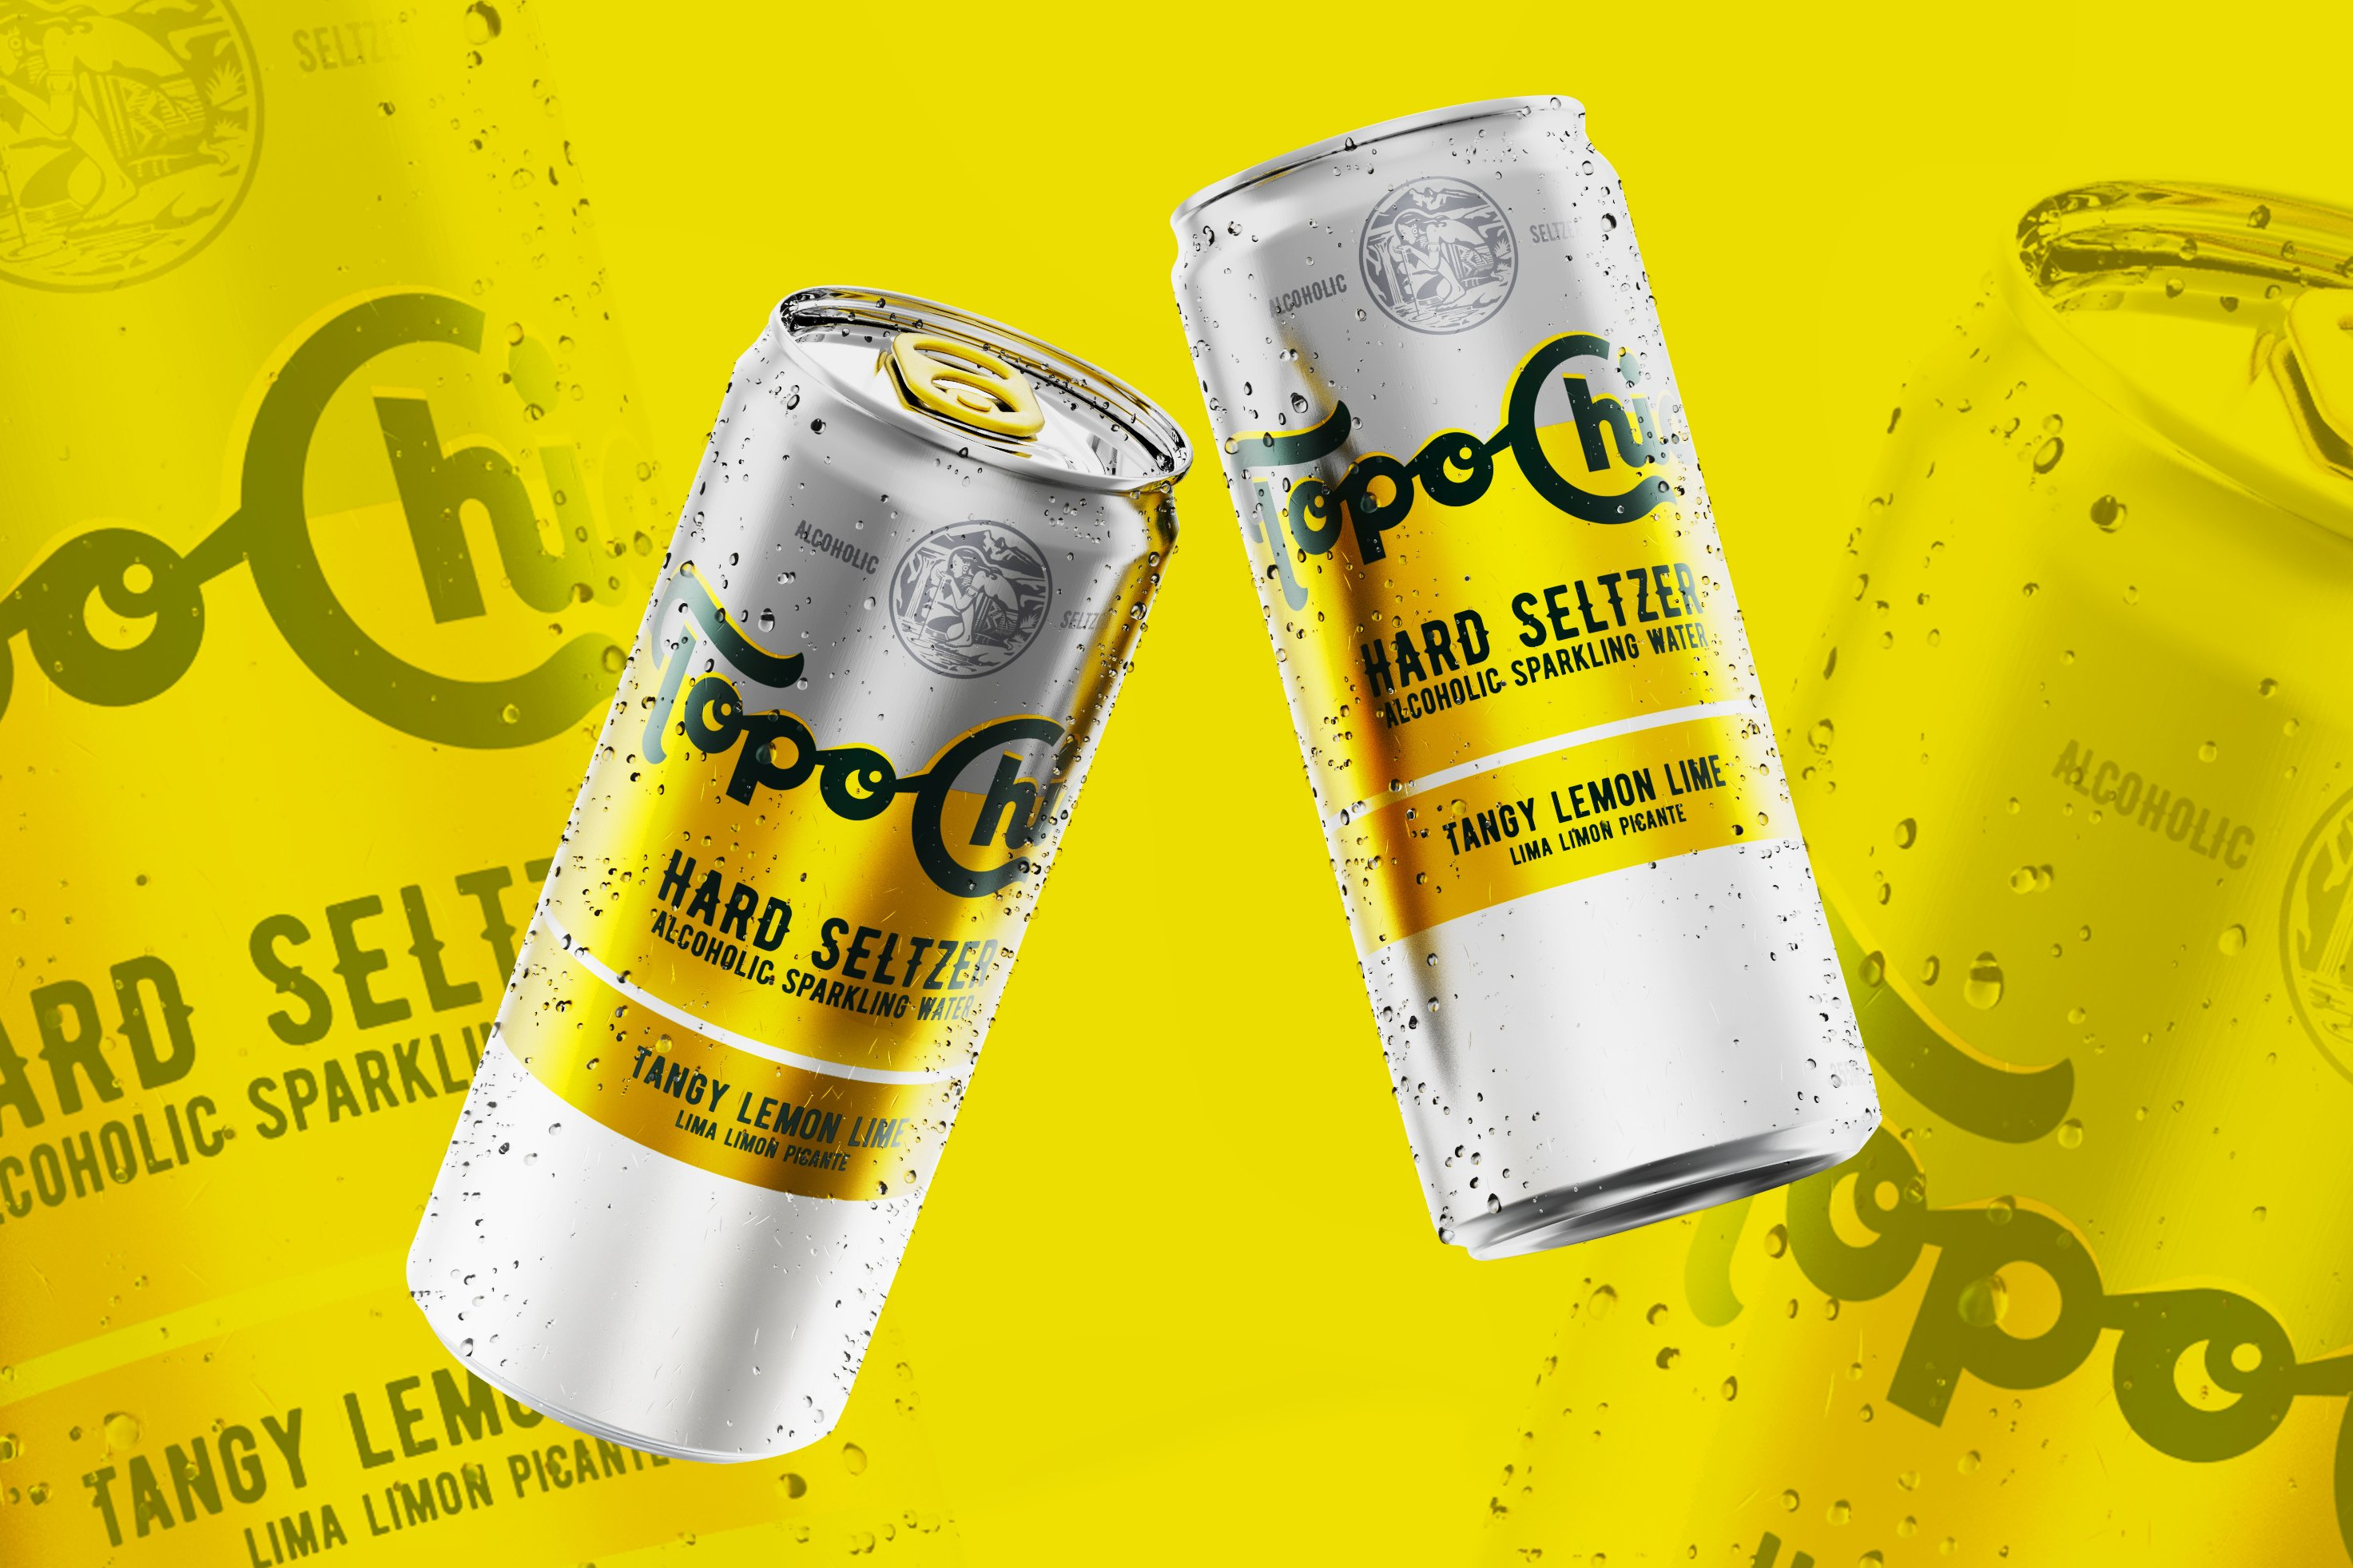 Coca-Cola Co. to enter U.S. alcohol market with Topo Chico Hard Seltzer